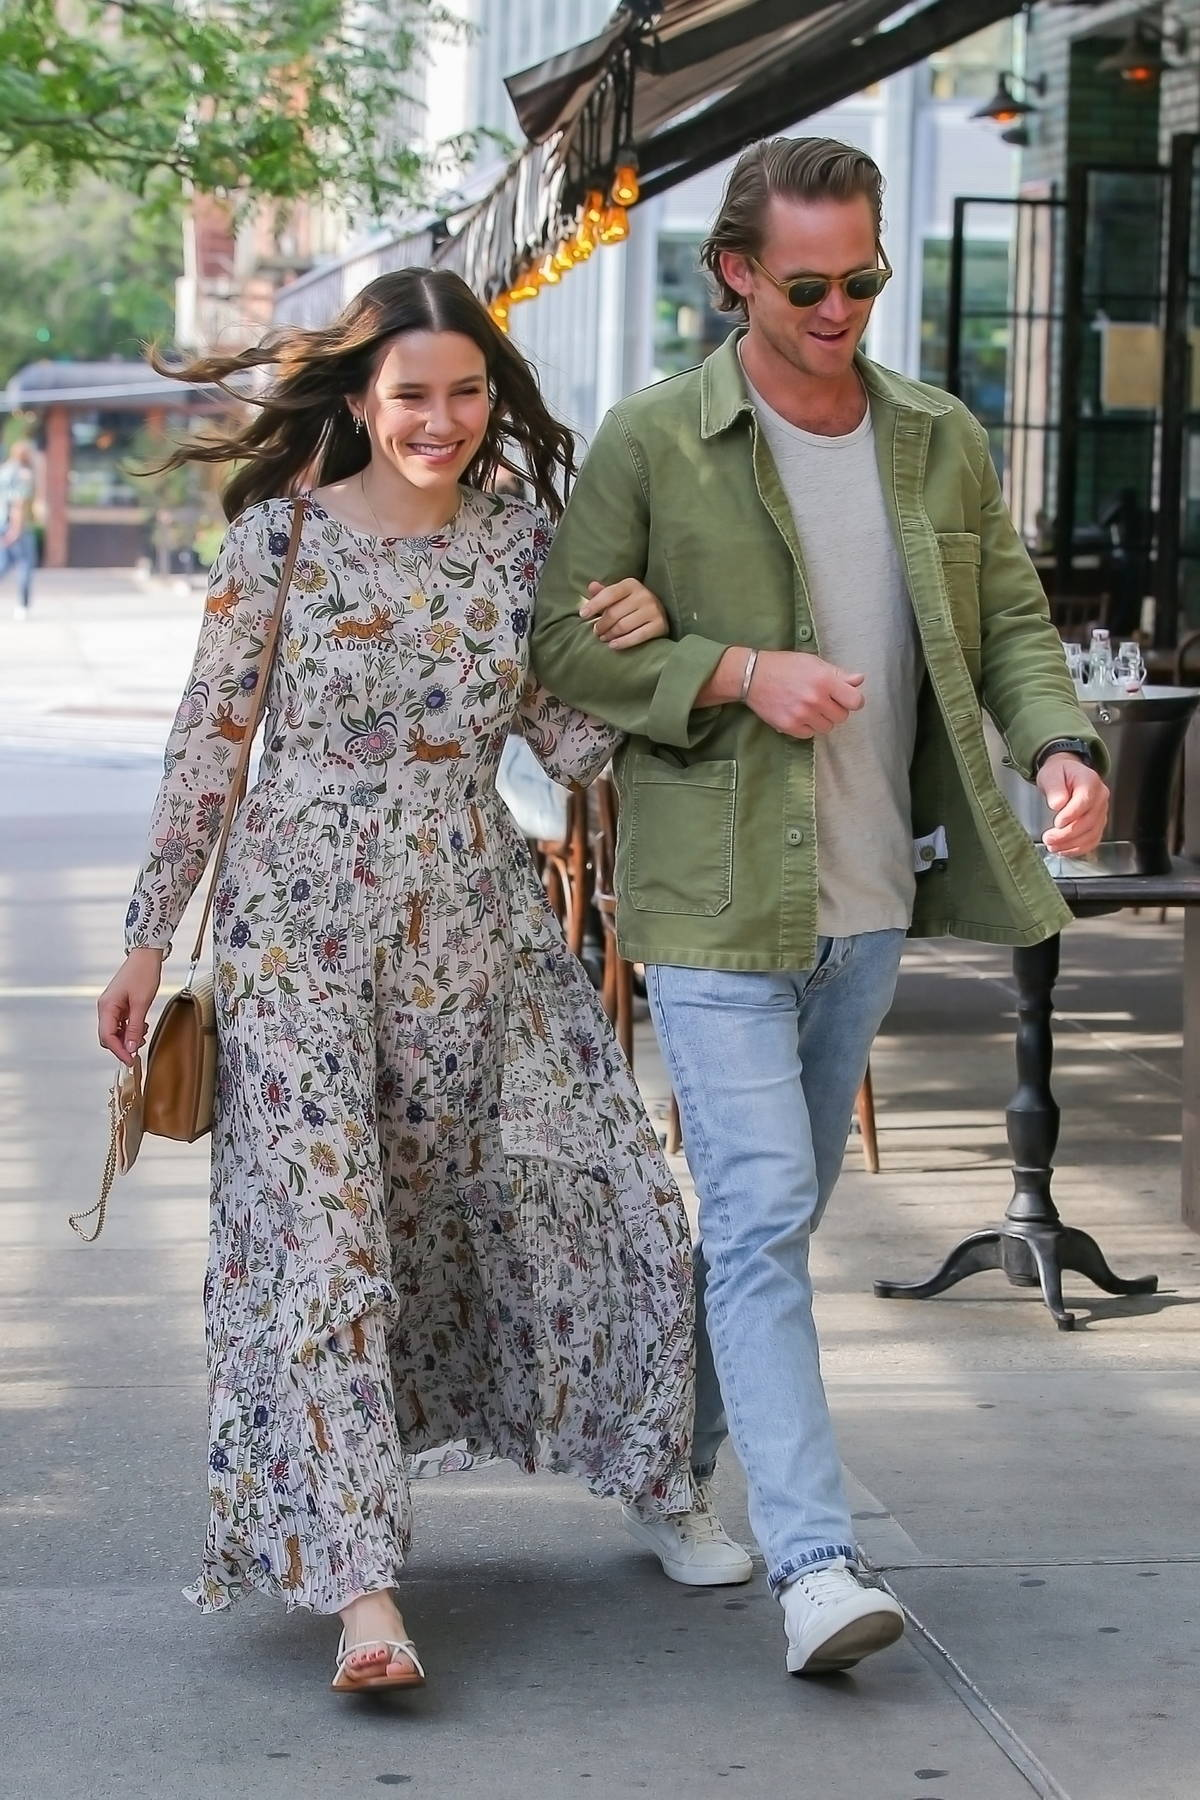 Sophia Bush looks lovely in a flowing summer dress while out with beau Grant Hughes in New York City